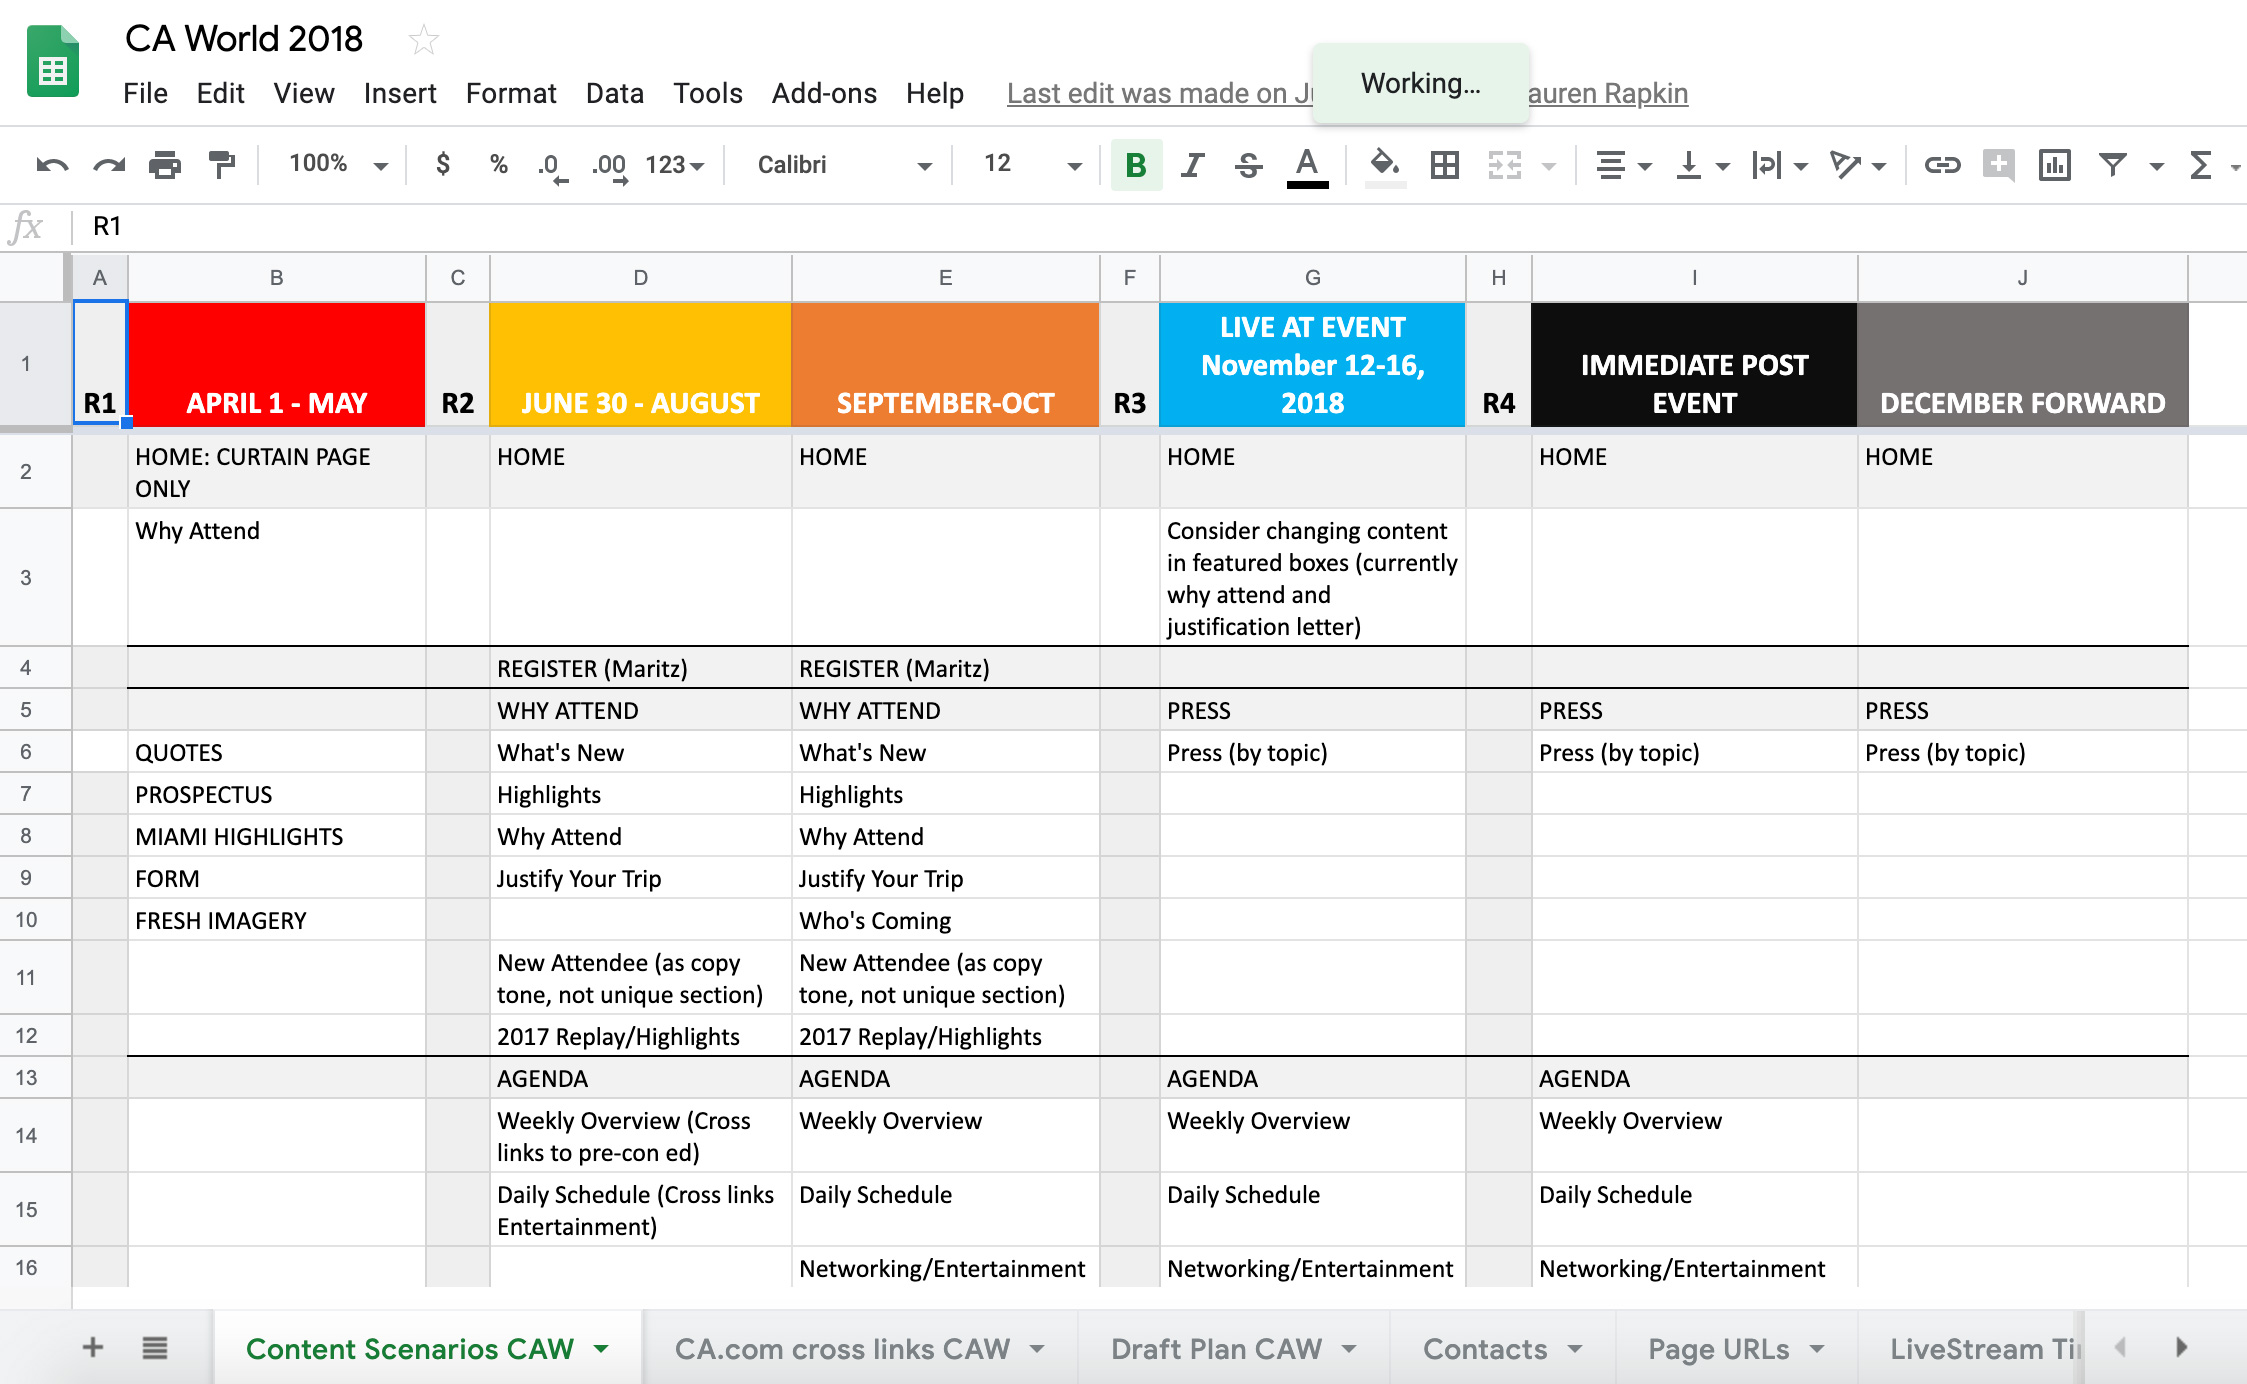 Periodic spreadsheet demonstrating IA and content planning for an upcoming event. This allowed pre-planning for UX, design, and navigation in advance of the live event.